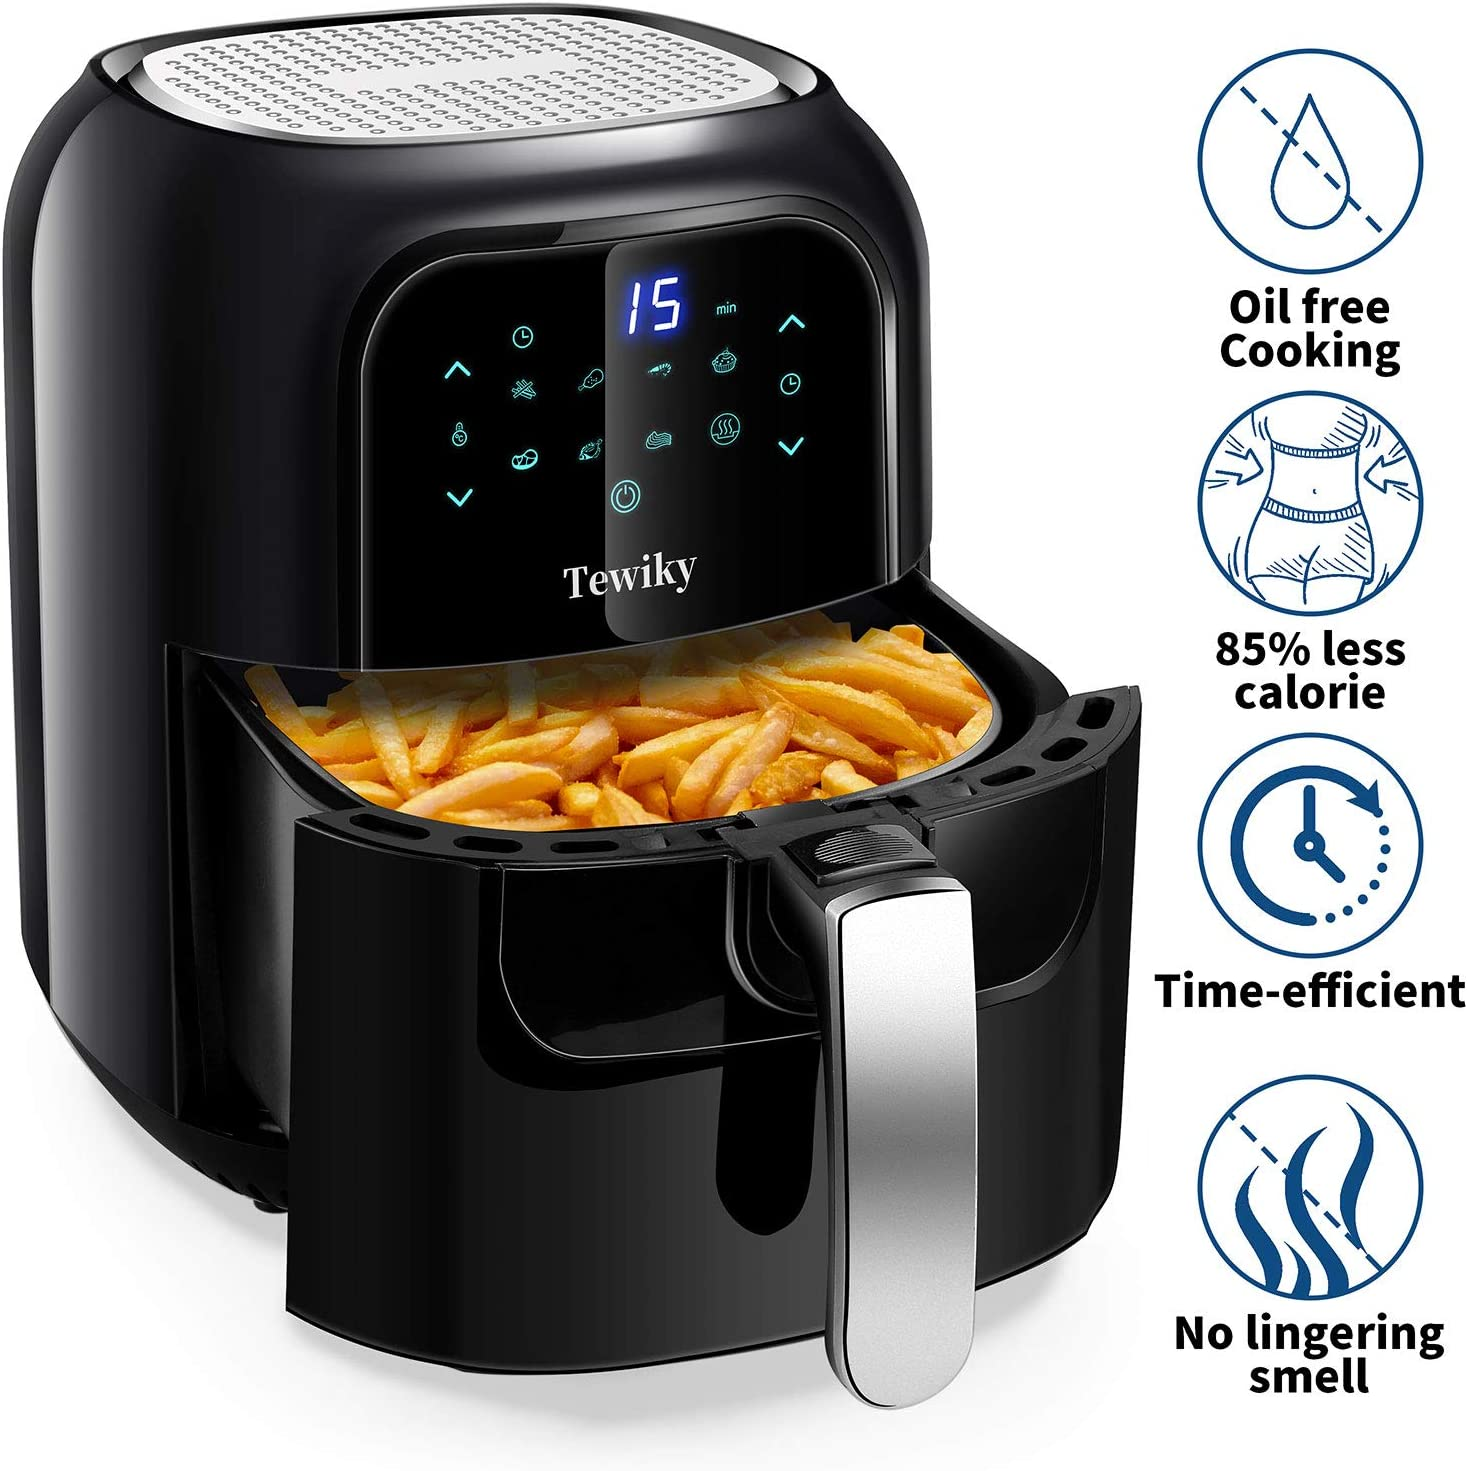 Free Amazon Promo Code 2020 for Air Fryer